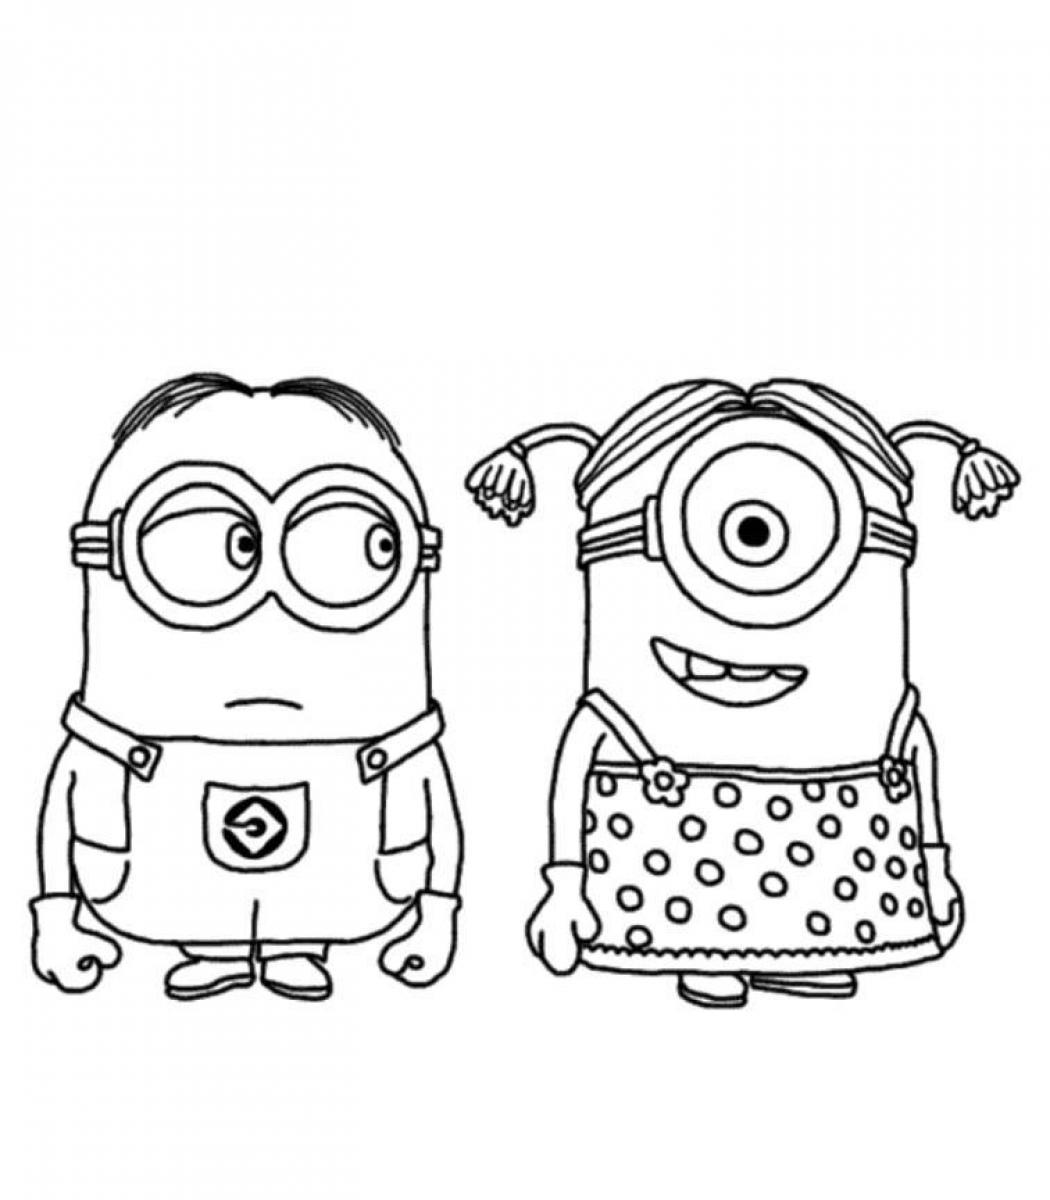 1050x1200 Printable Coloring Pages For Girls Minions Printable Coloring